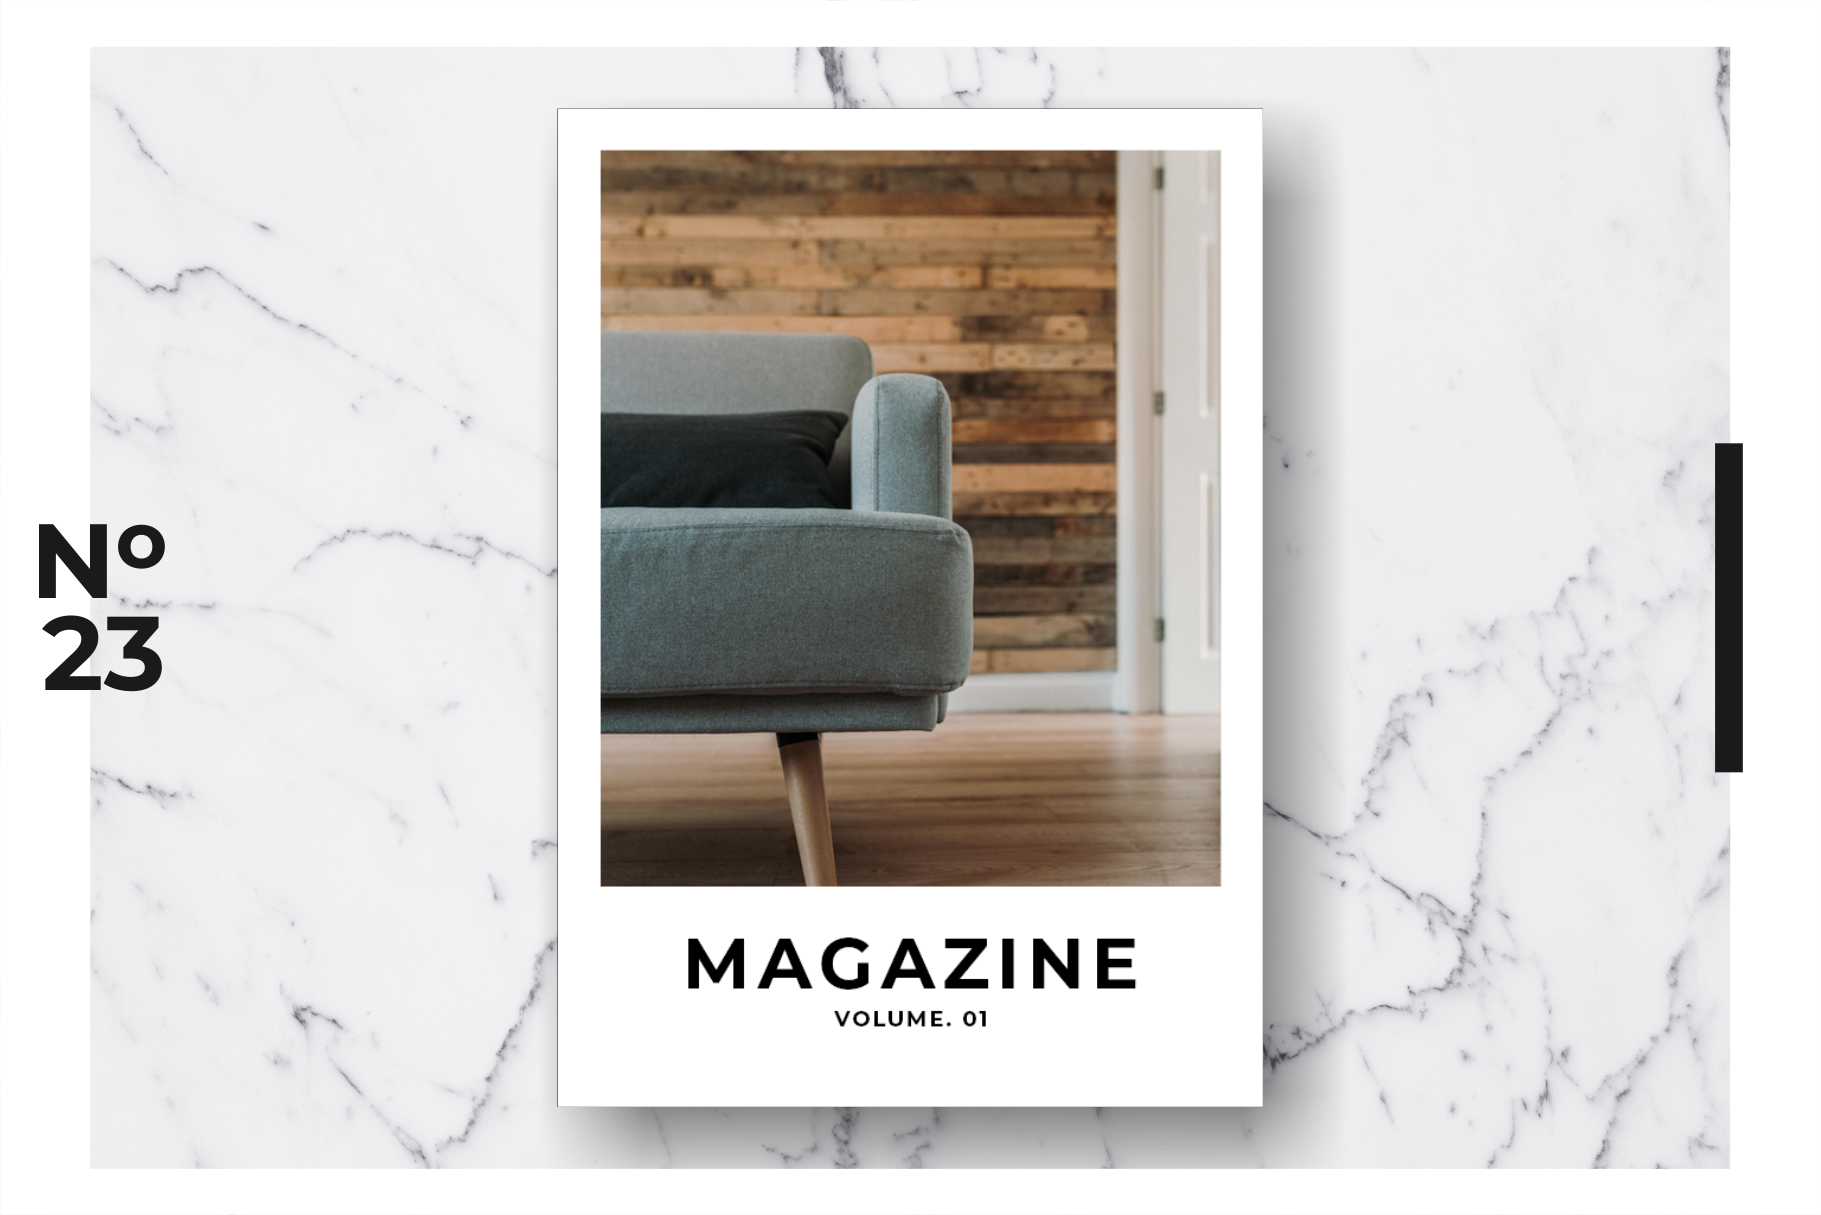 Magazine Template Vol. 08 example image 1